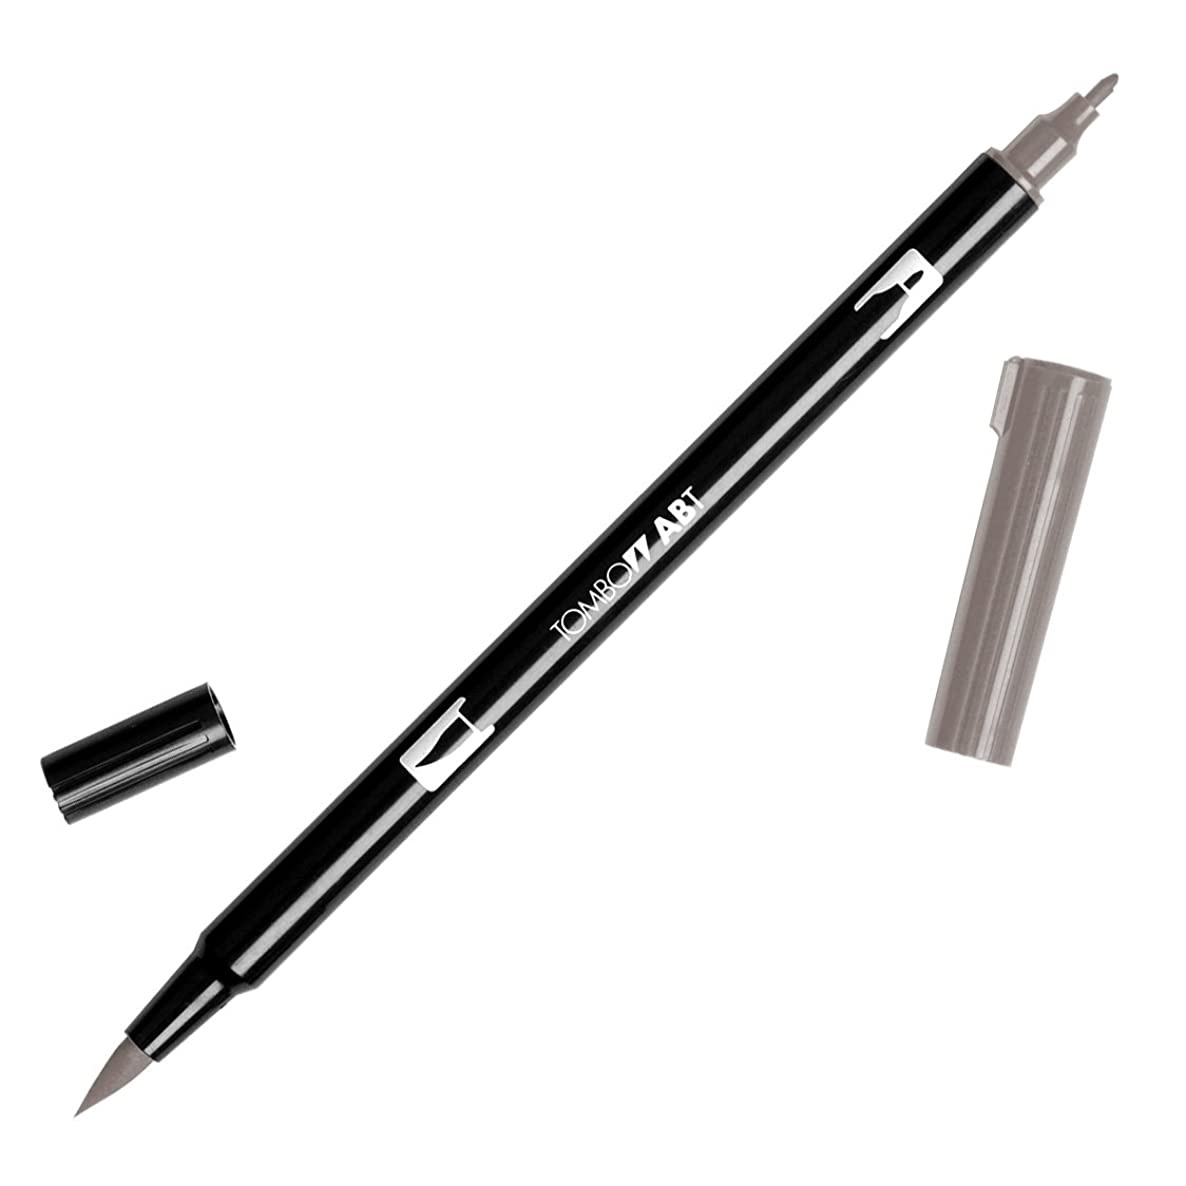 Tombow Dual Brush Pen Art Markers, Warm Gray 2 N79, 1-Pack